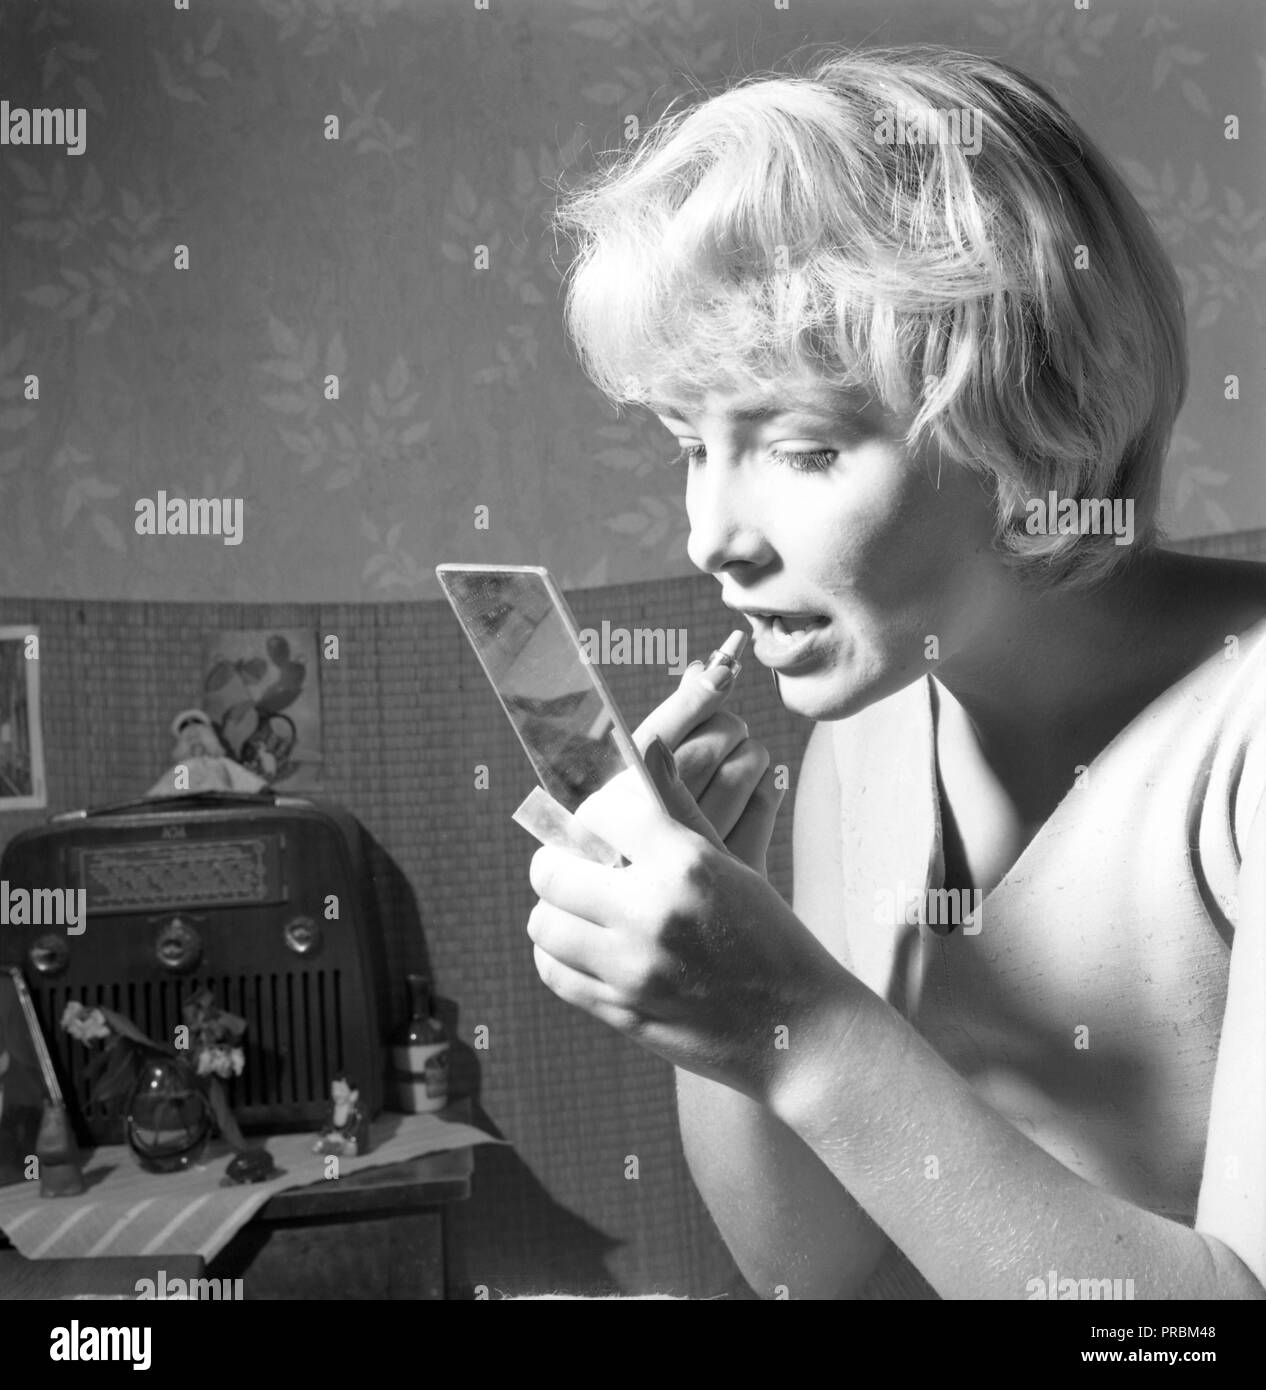 Makeup in the 1950s. A young woman is holding a pocket mirror applying lipstick. Pictured singer Lena Granhagen, born 1938. Ref 3509 - Stock Image